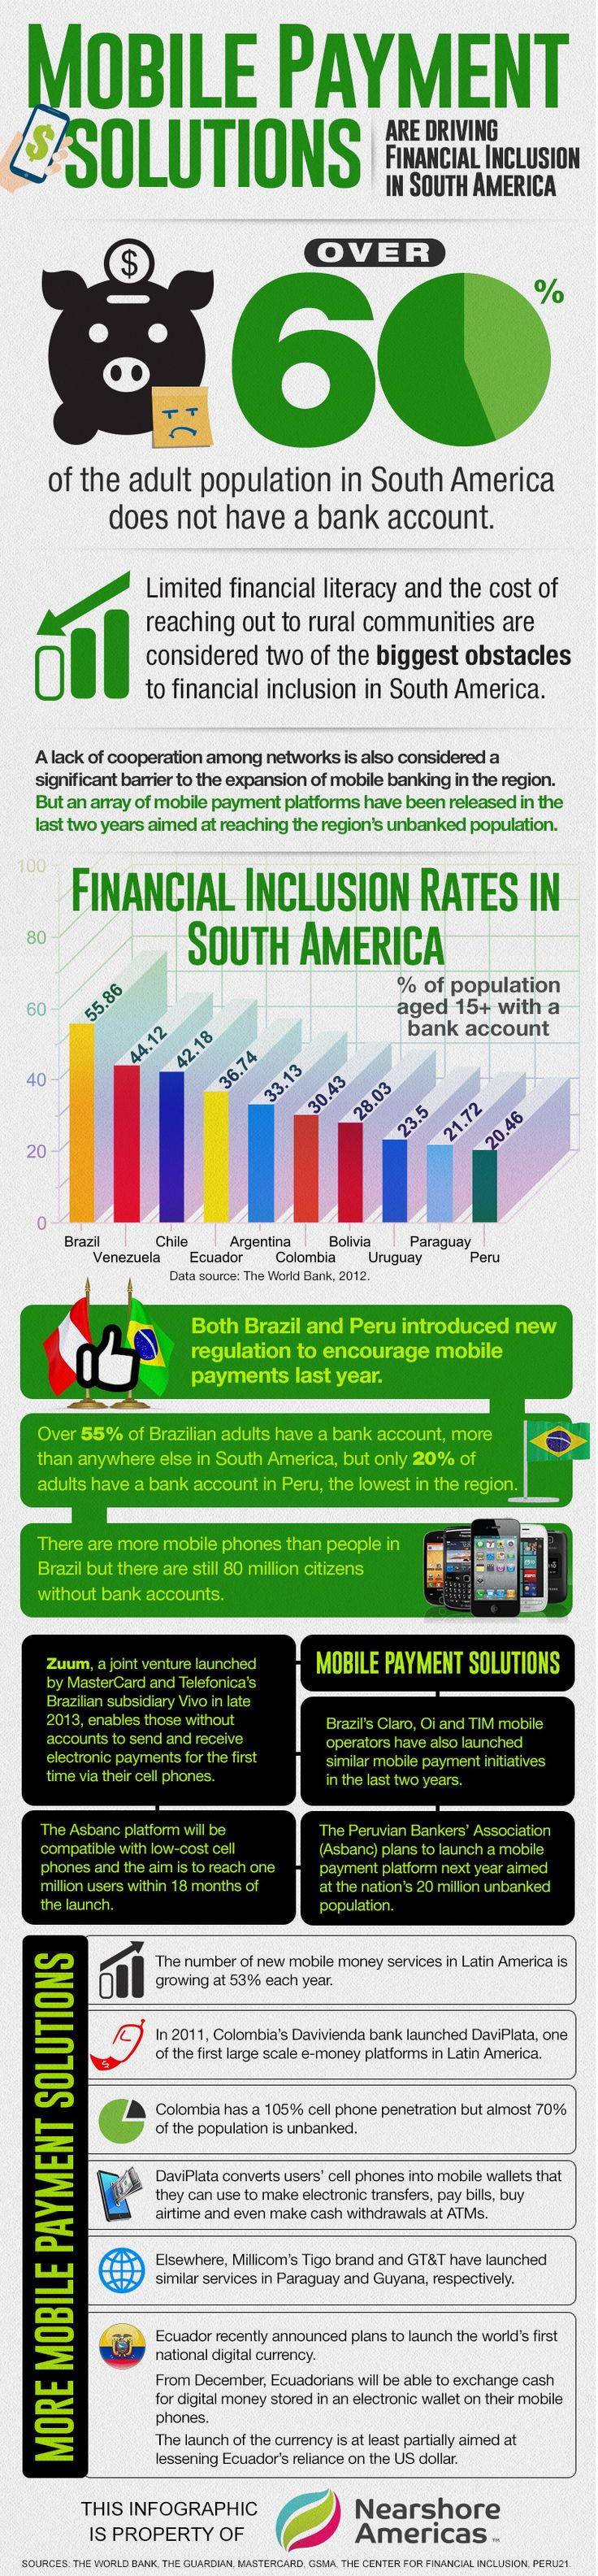 In order for any country or region to fulfill its economic potential it is crucial to integrate as much of the population as possible into the formal financial system. Check out how mobile payments drive financial inclusion in South America.